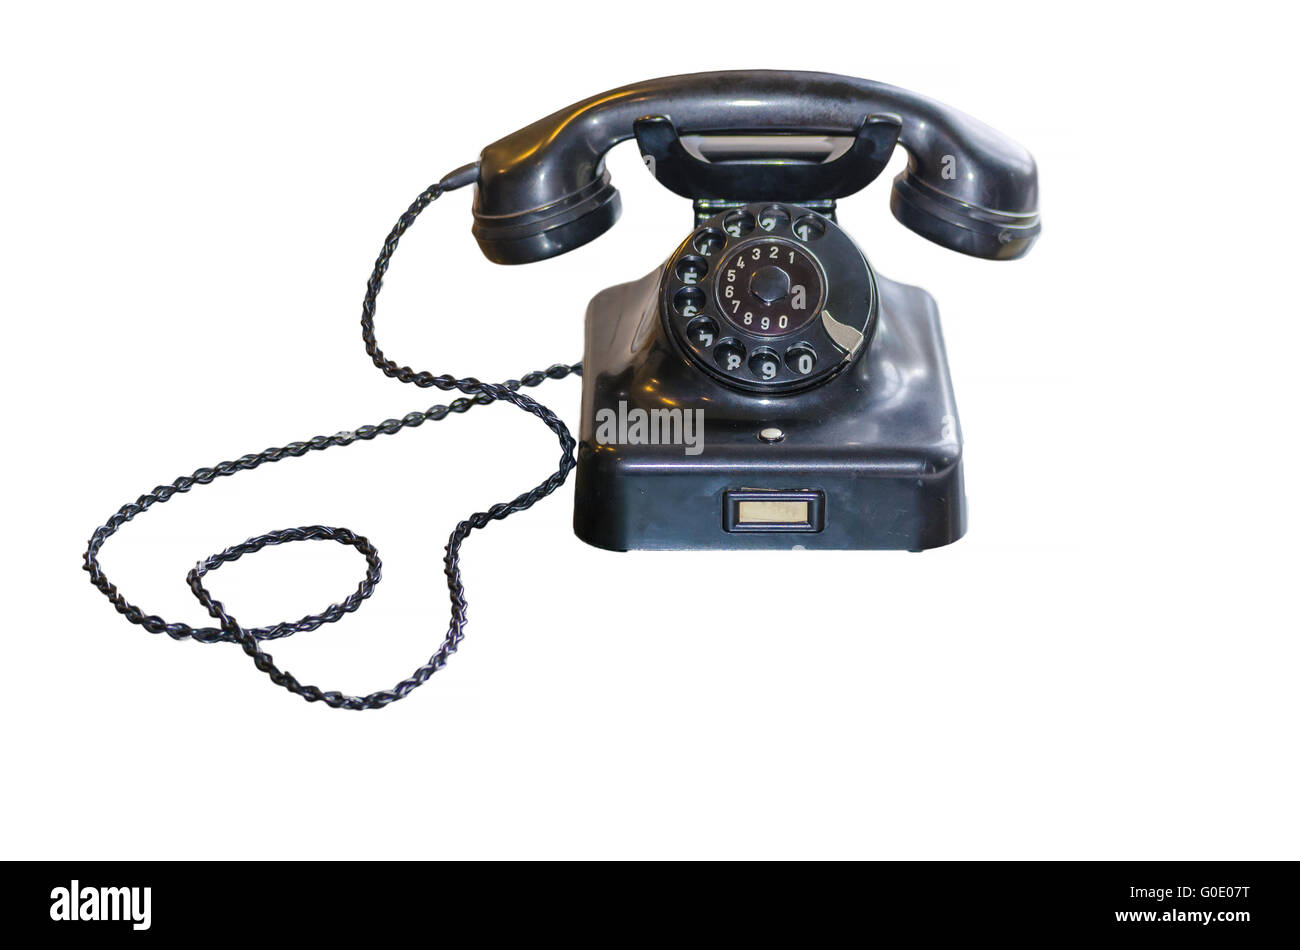 Antique Telephone with dial on white background - Stock Image